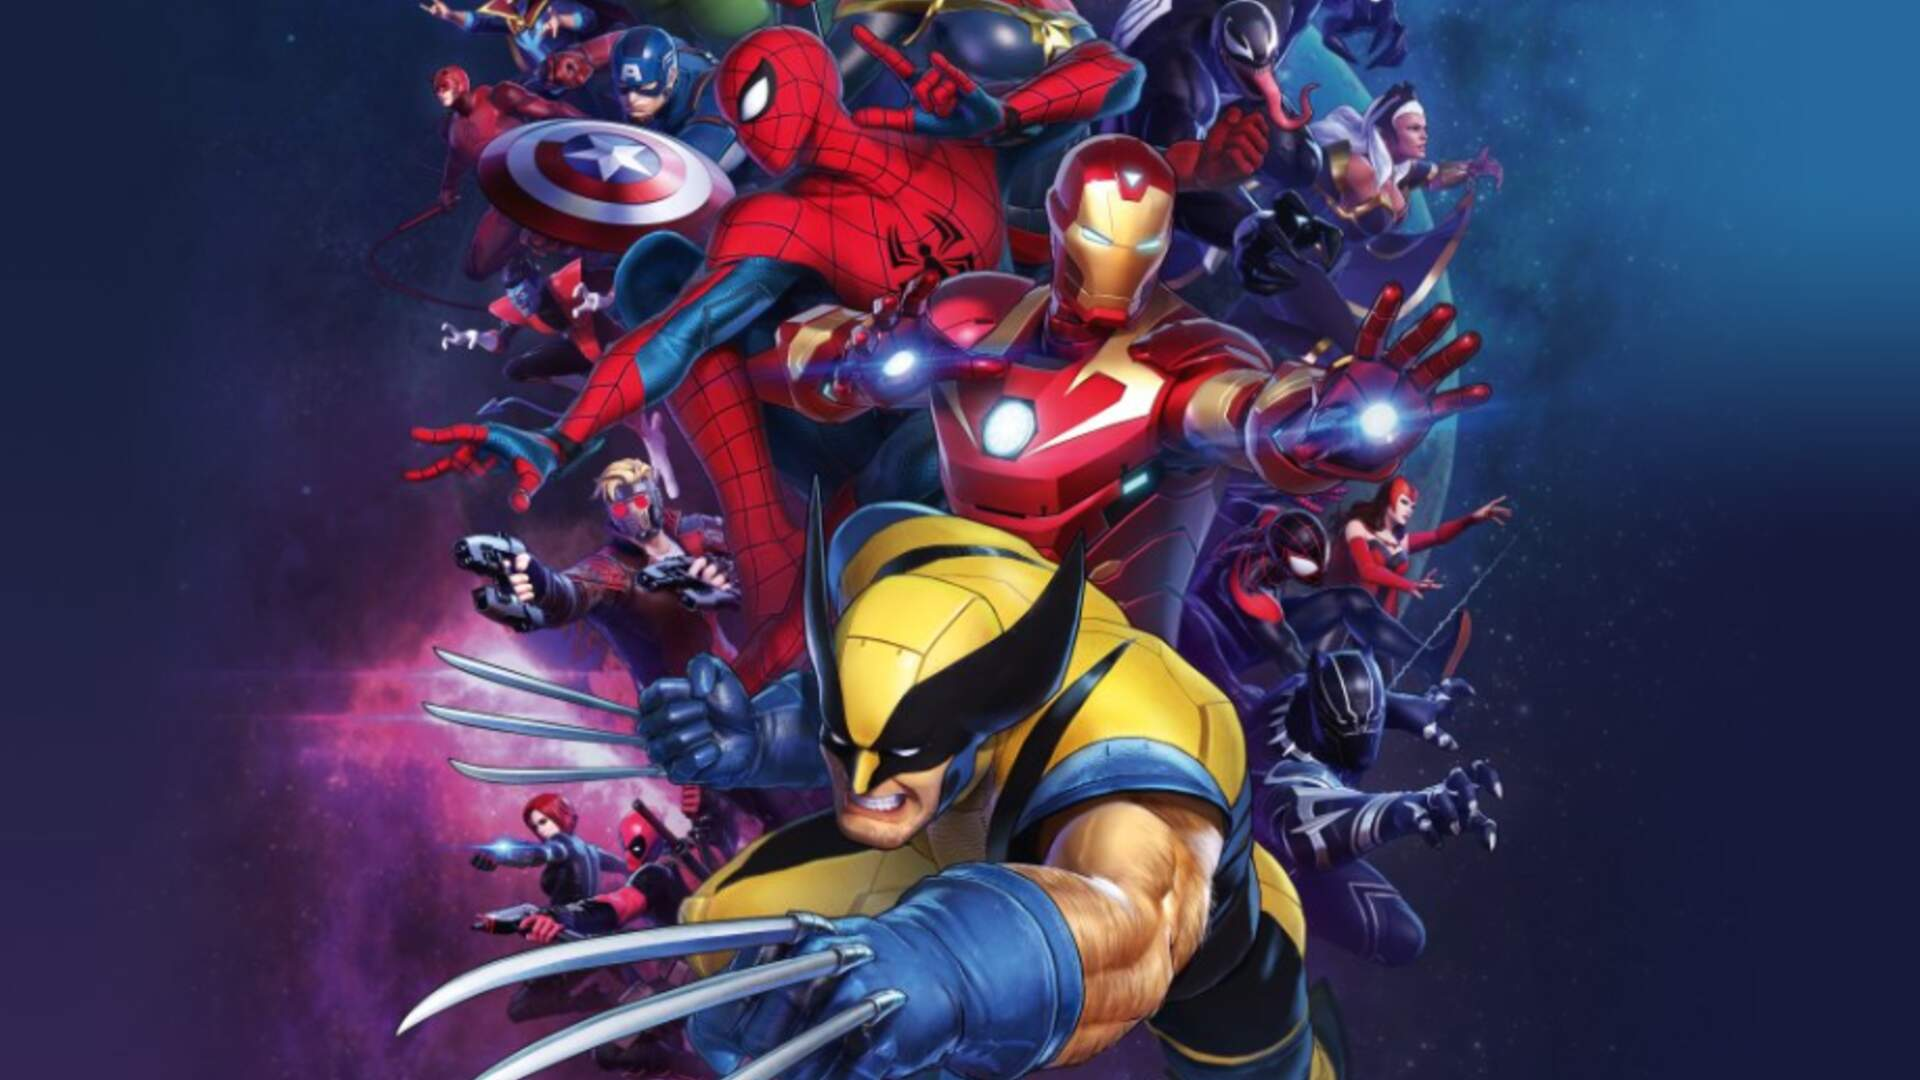 Marvel Ultimate Alliance 3 Release Date Revealed, New Characters Confirmed